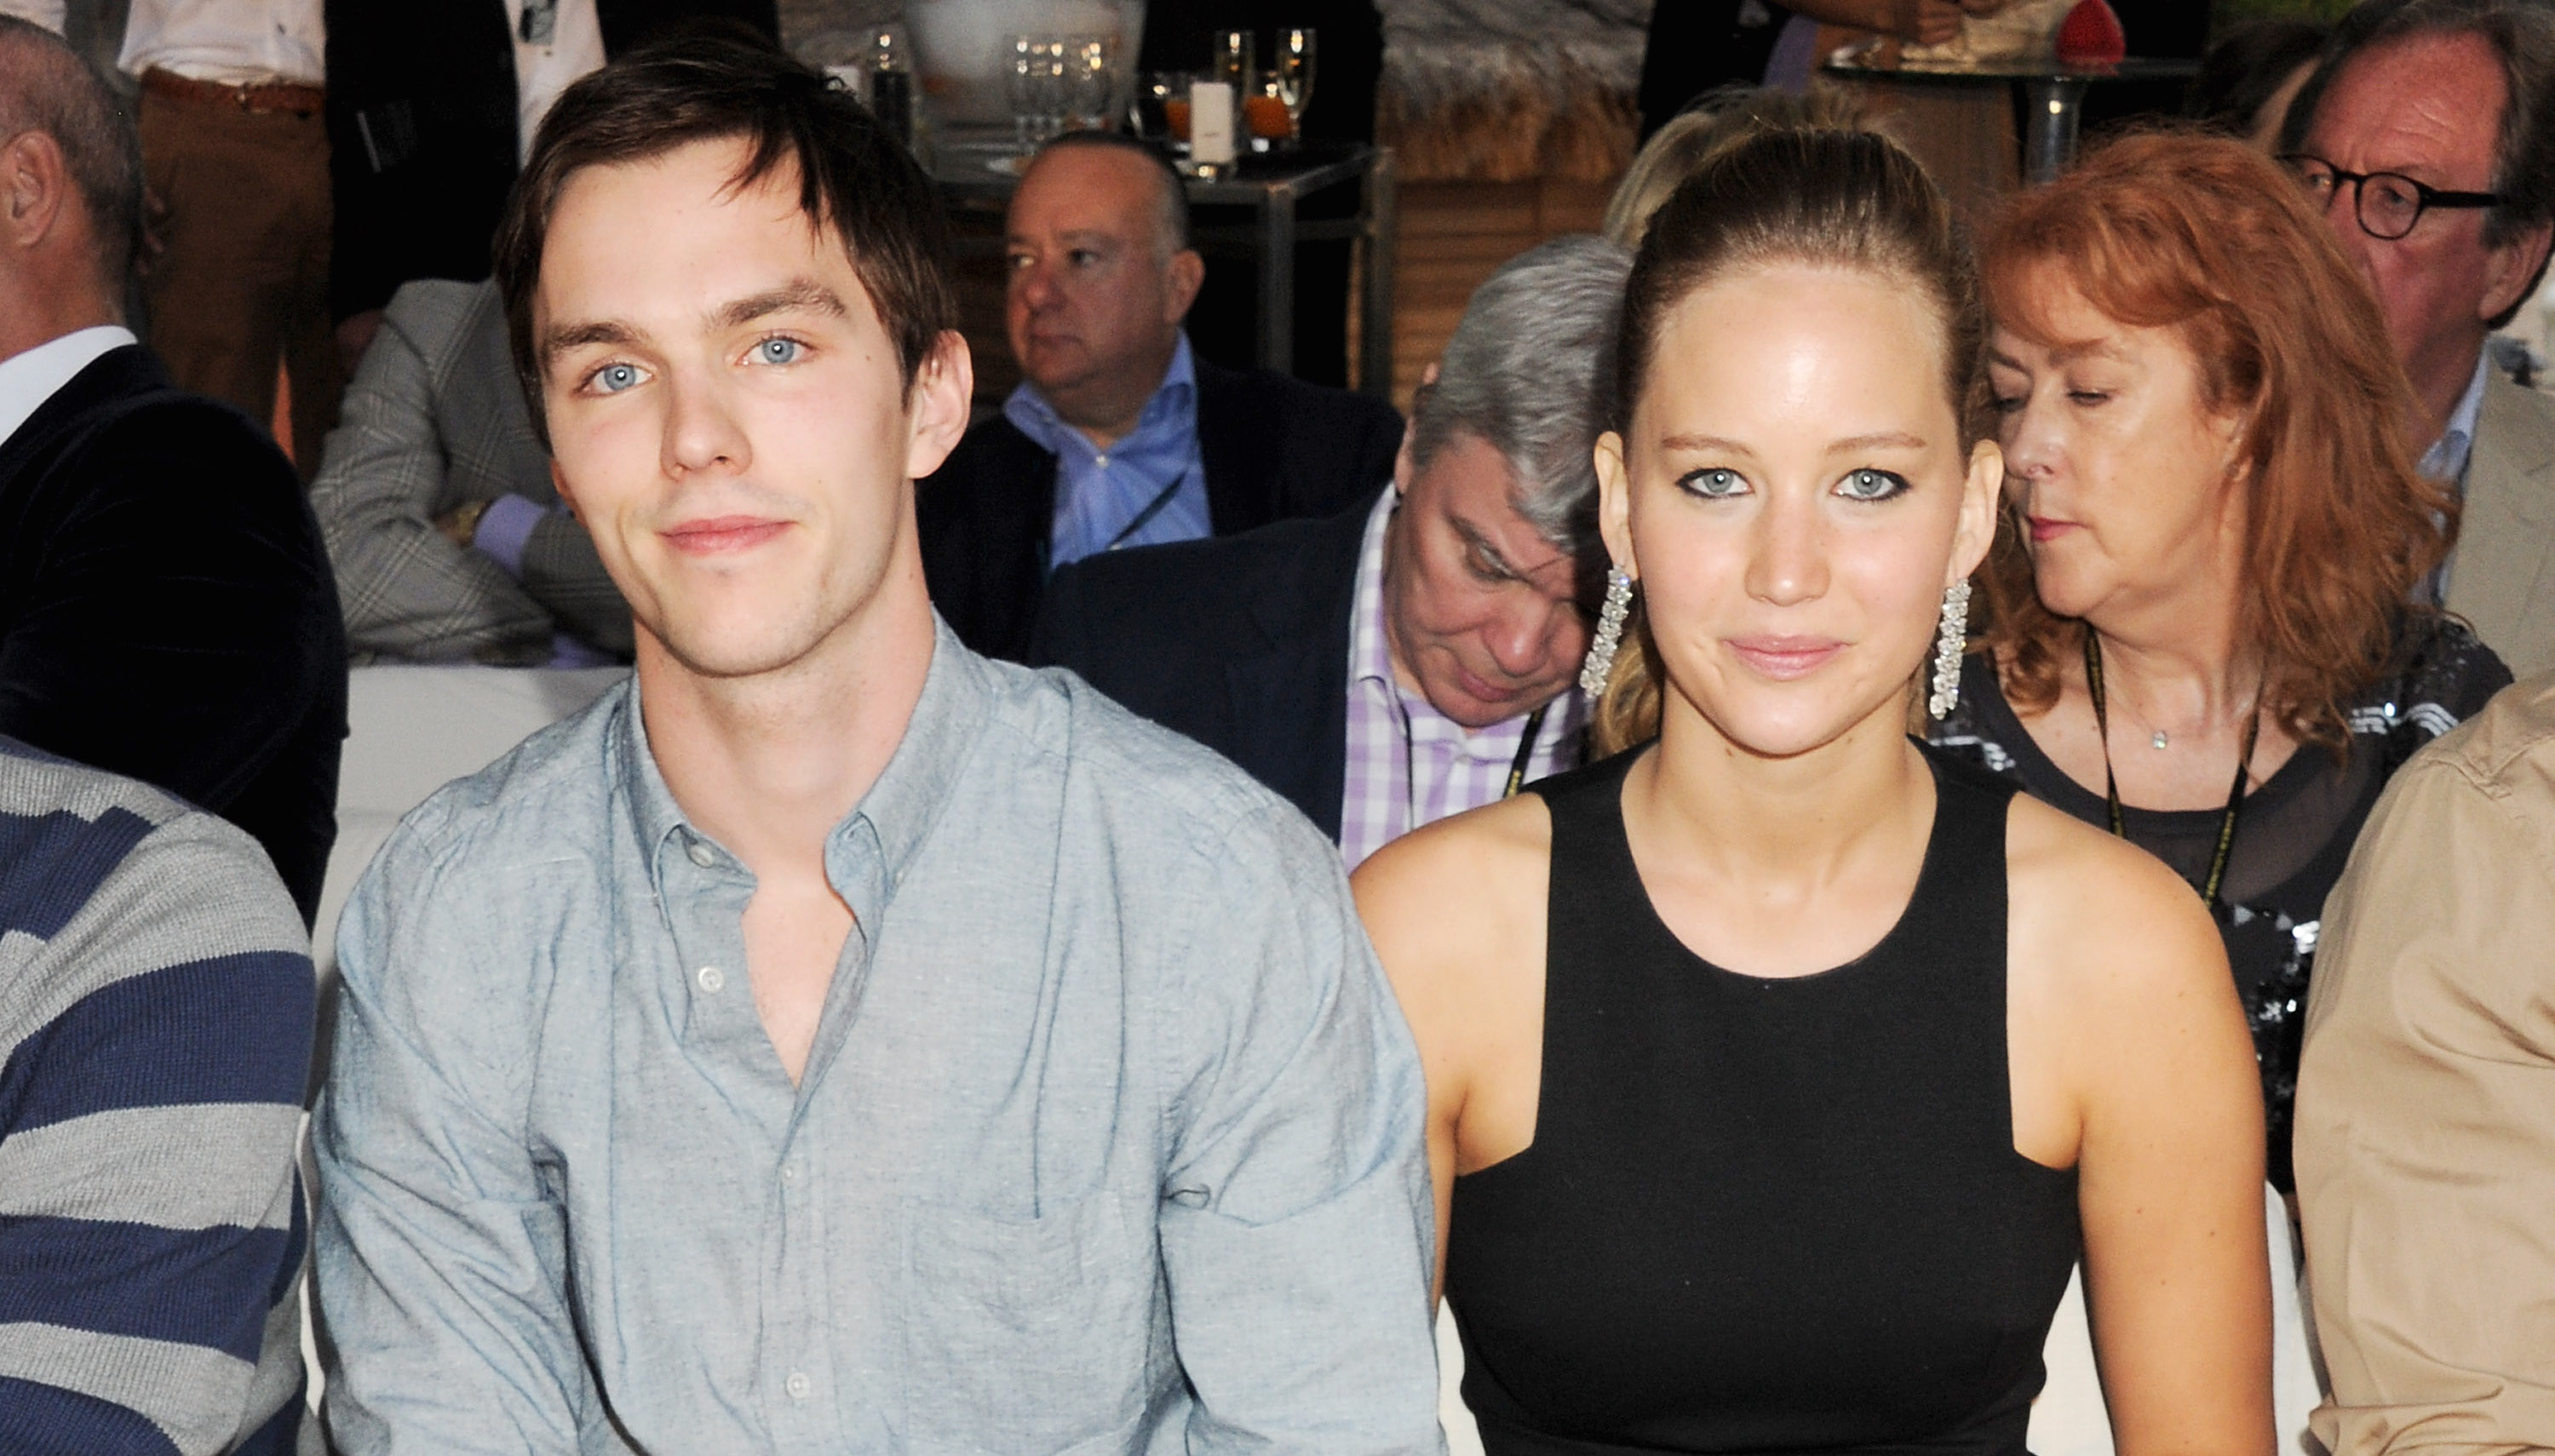 This beauty product got in the way of Jennifer Lawrence and ex Nicholas Hoult's love life